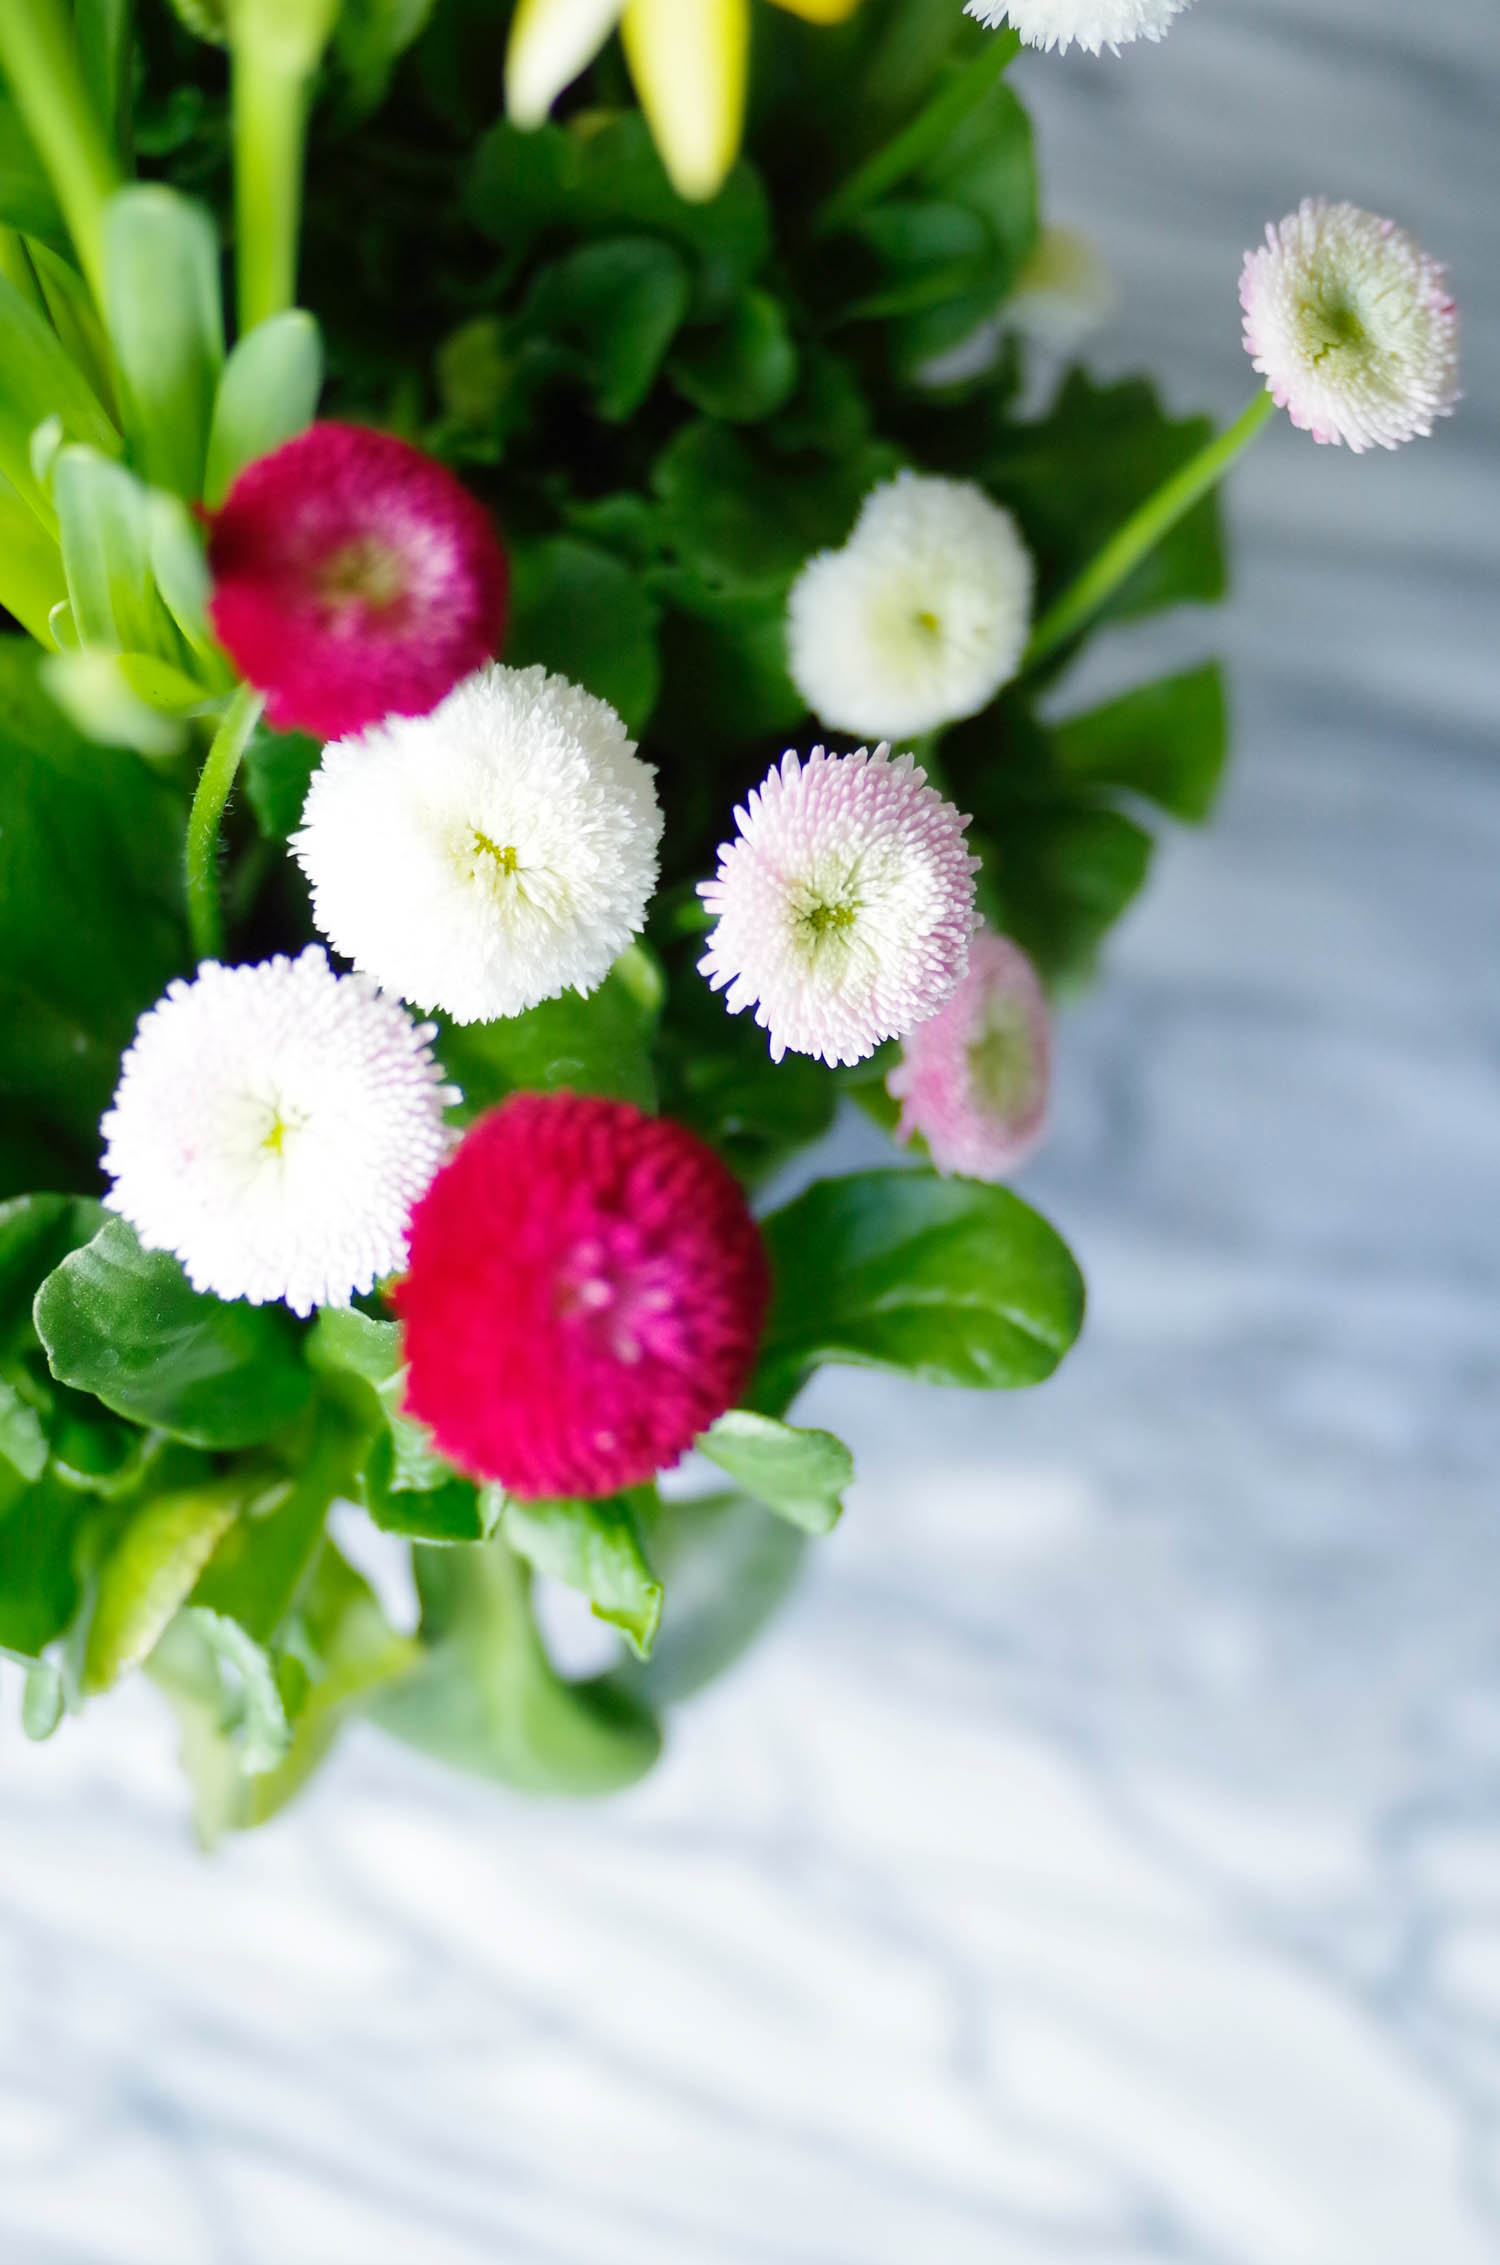 Signs of Spring: I looove English Daisies! Like little buttons in my favorite colors.